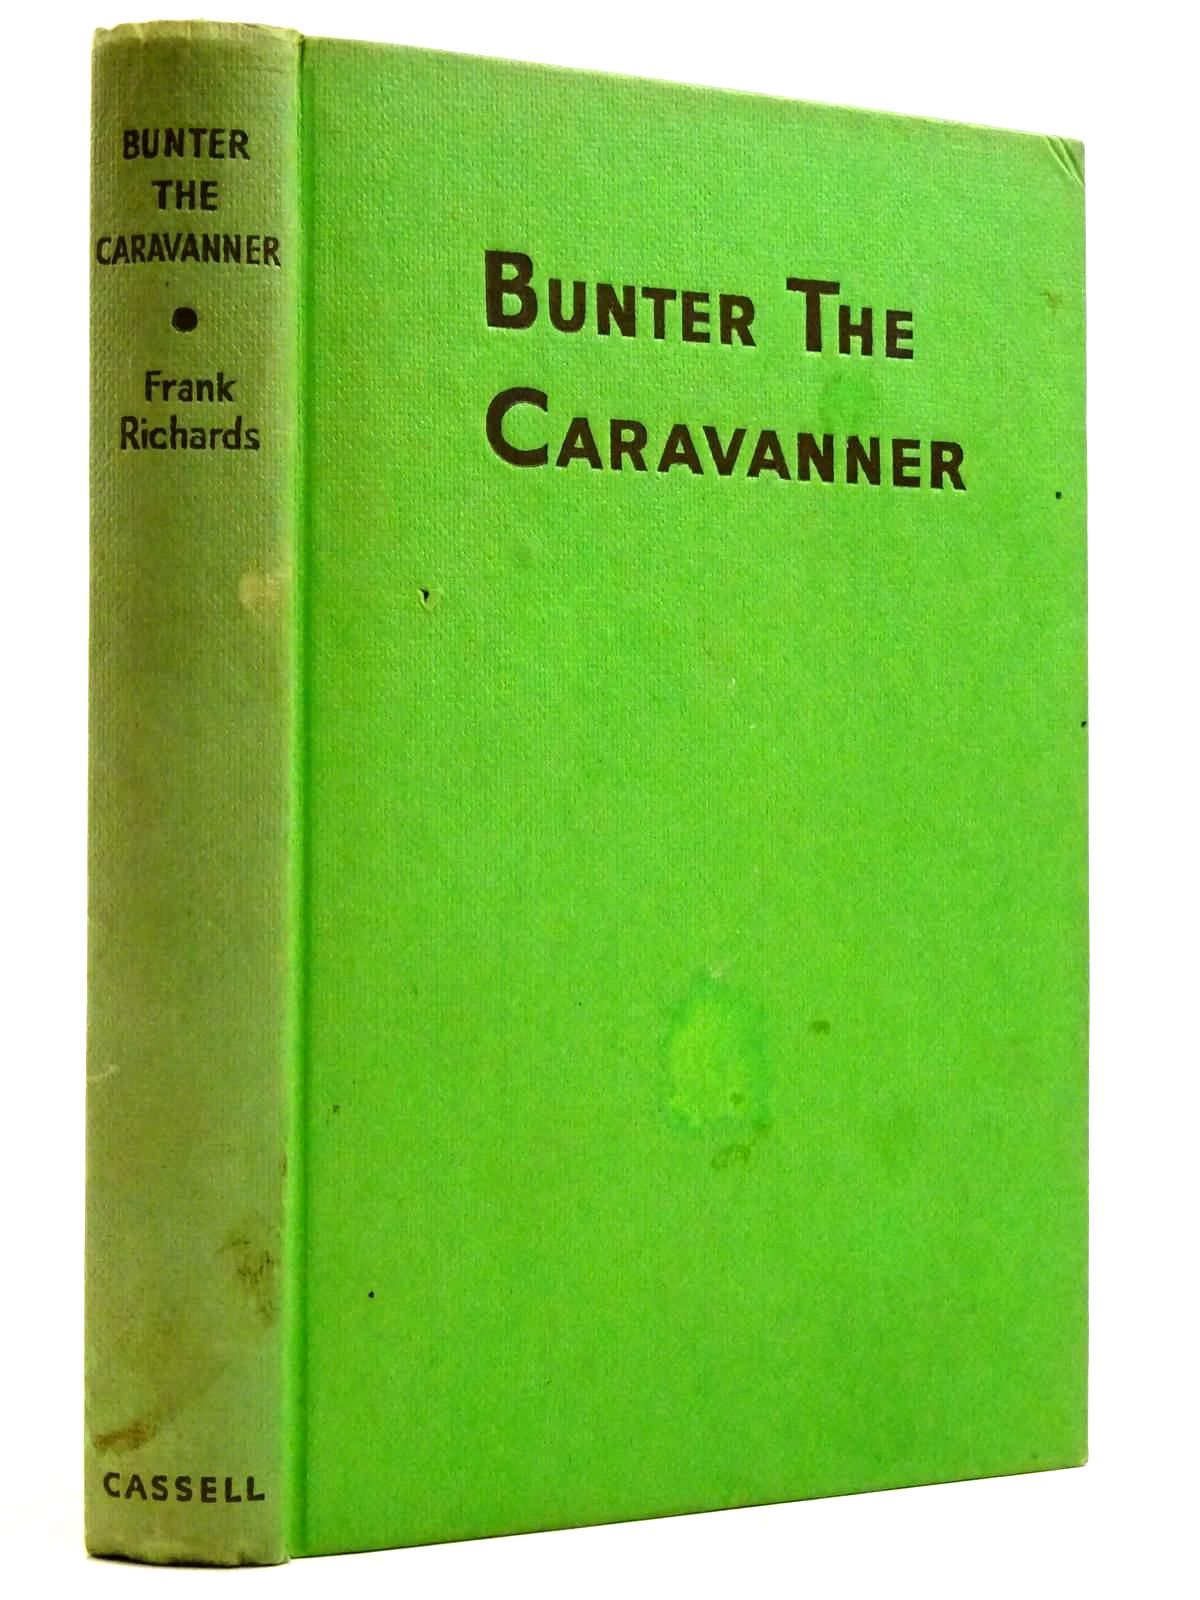 Photo of BUNTER THE CARAVANNER written by Richards, Frank illustrated by Chapman, C.H. published by Cassell & Company Ltd (STOCK CODE: 2131544)  for sale by Stella & Rose's Books